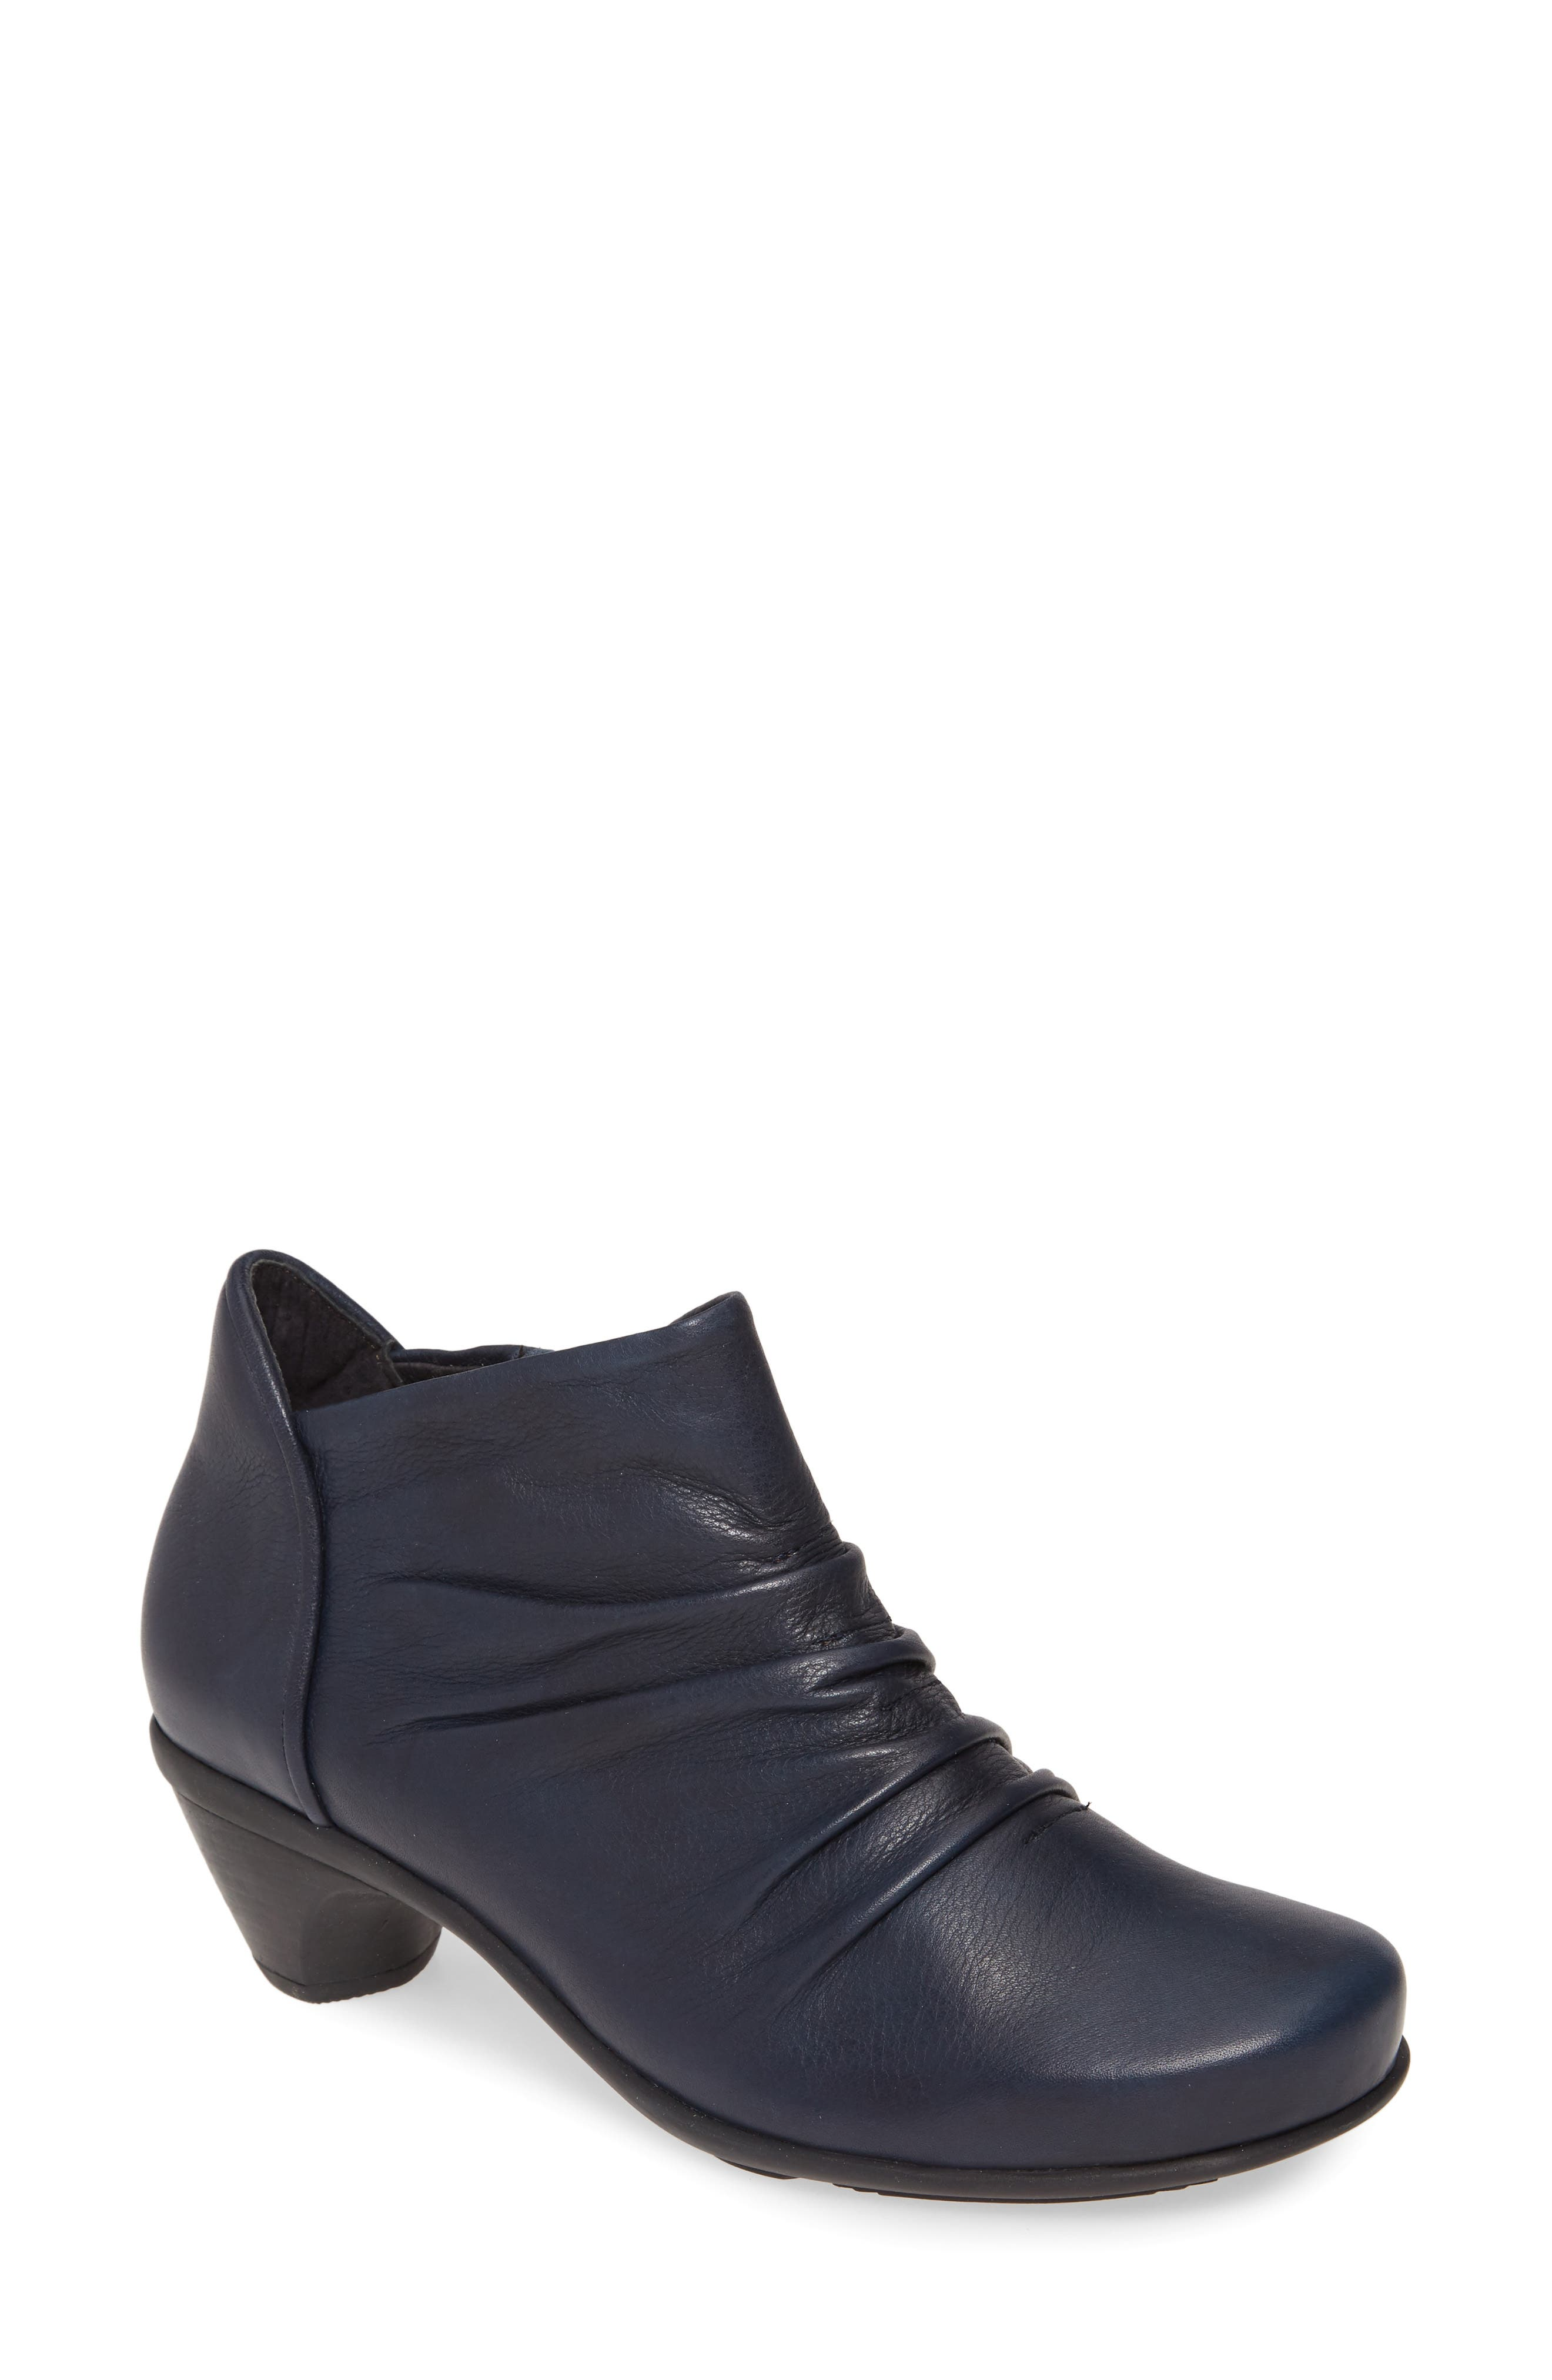 7833e5fc7b8c2 slouch boots | Nordstrom